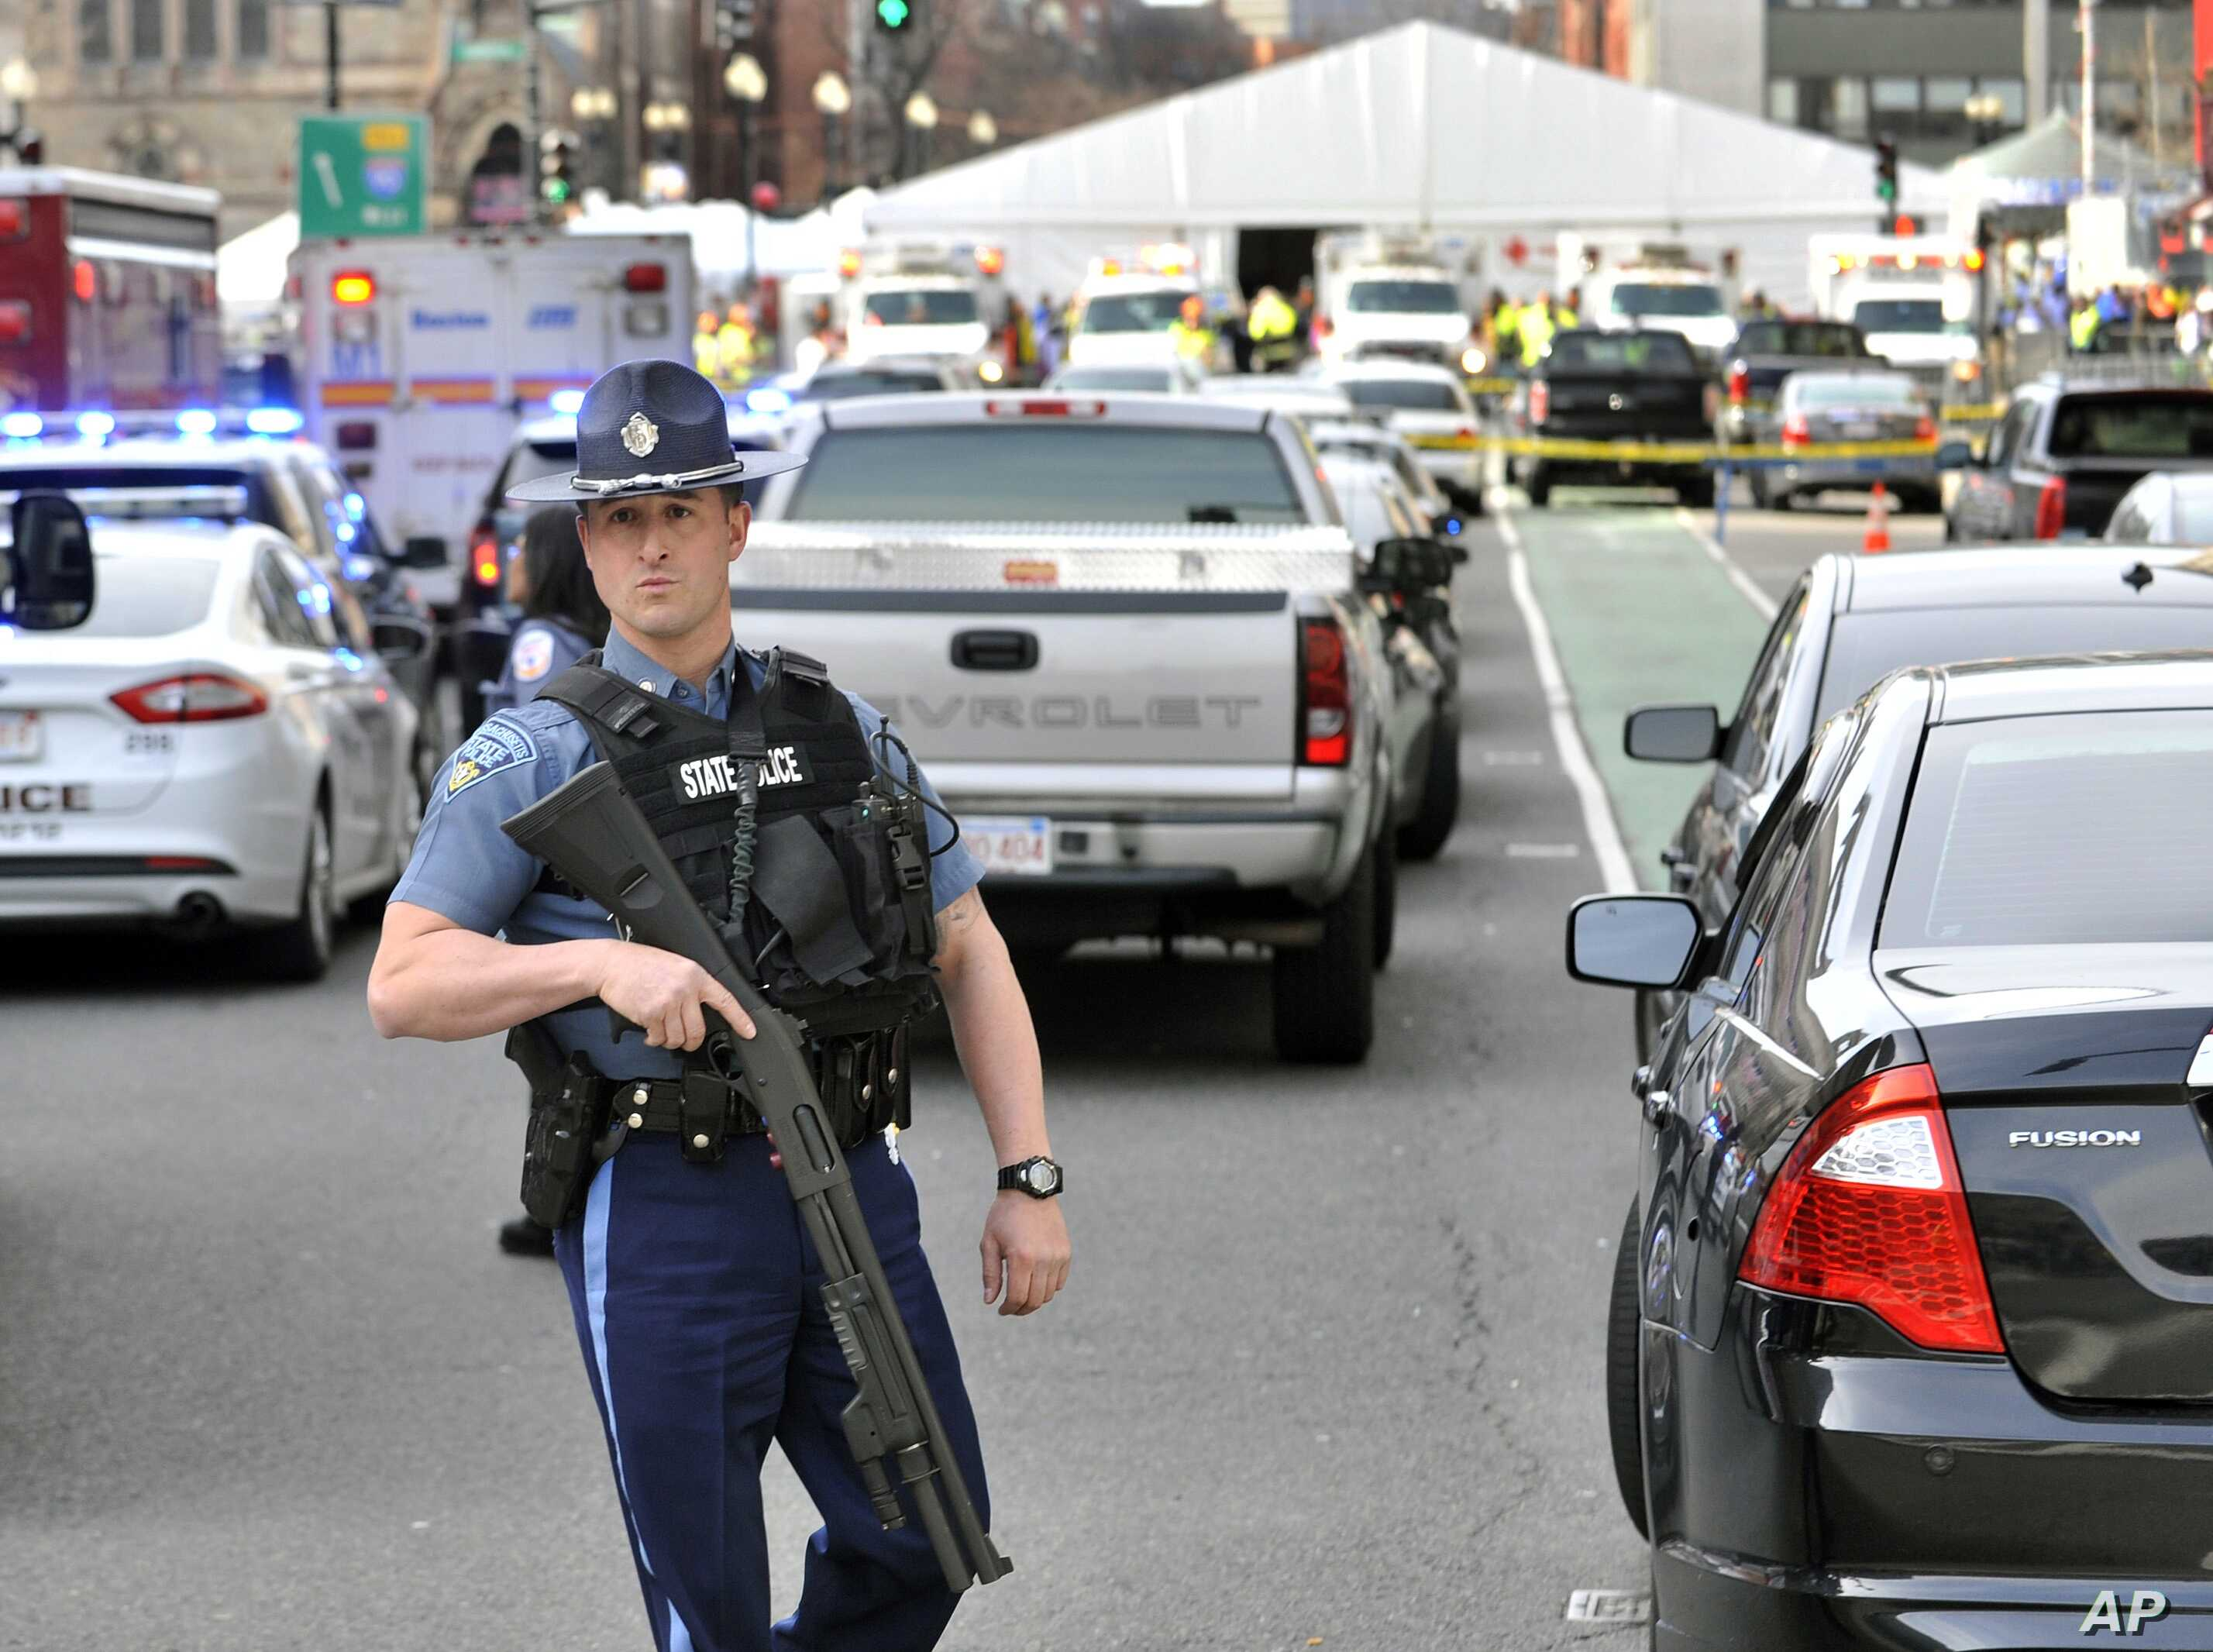 A Massachusetts State Police officer guards the area containing the medical tent, rear, following an explosion at the 2013 Boston Marathon, April 15, 2013.